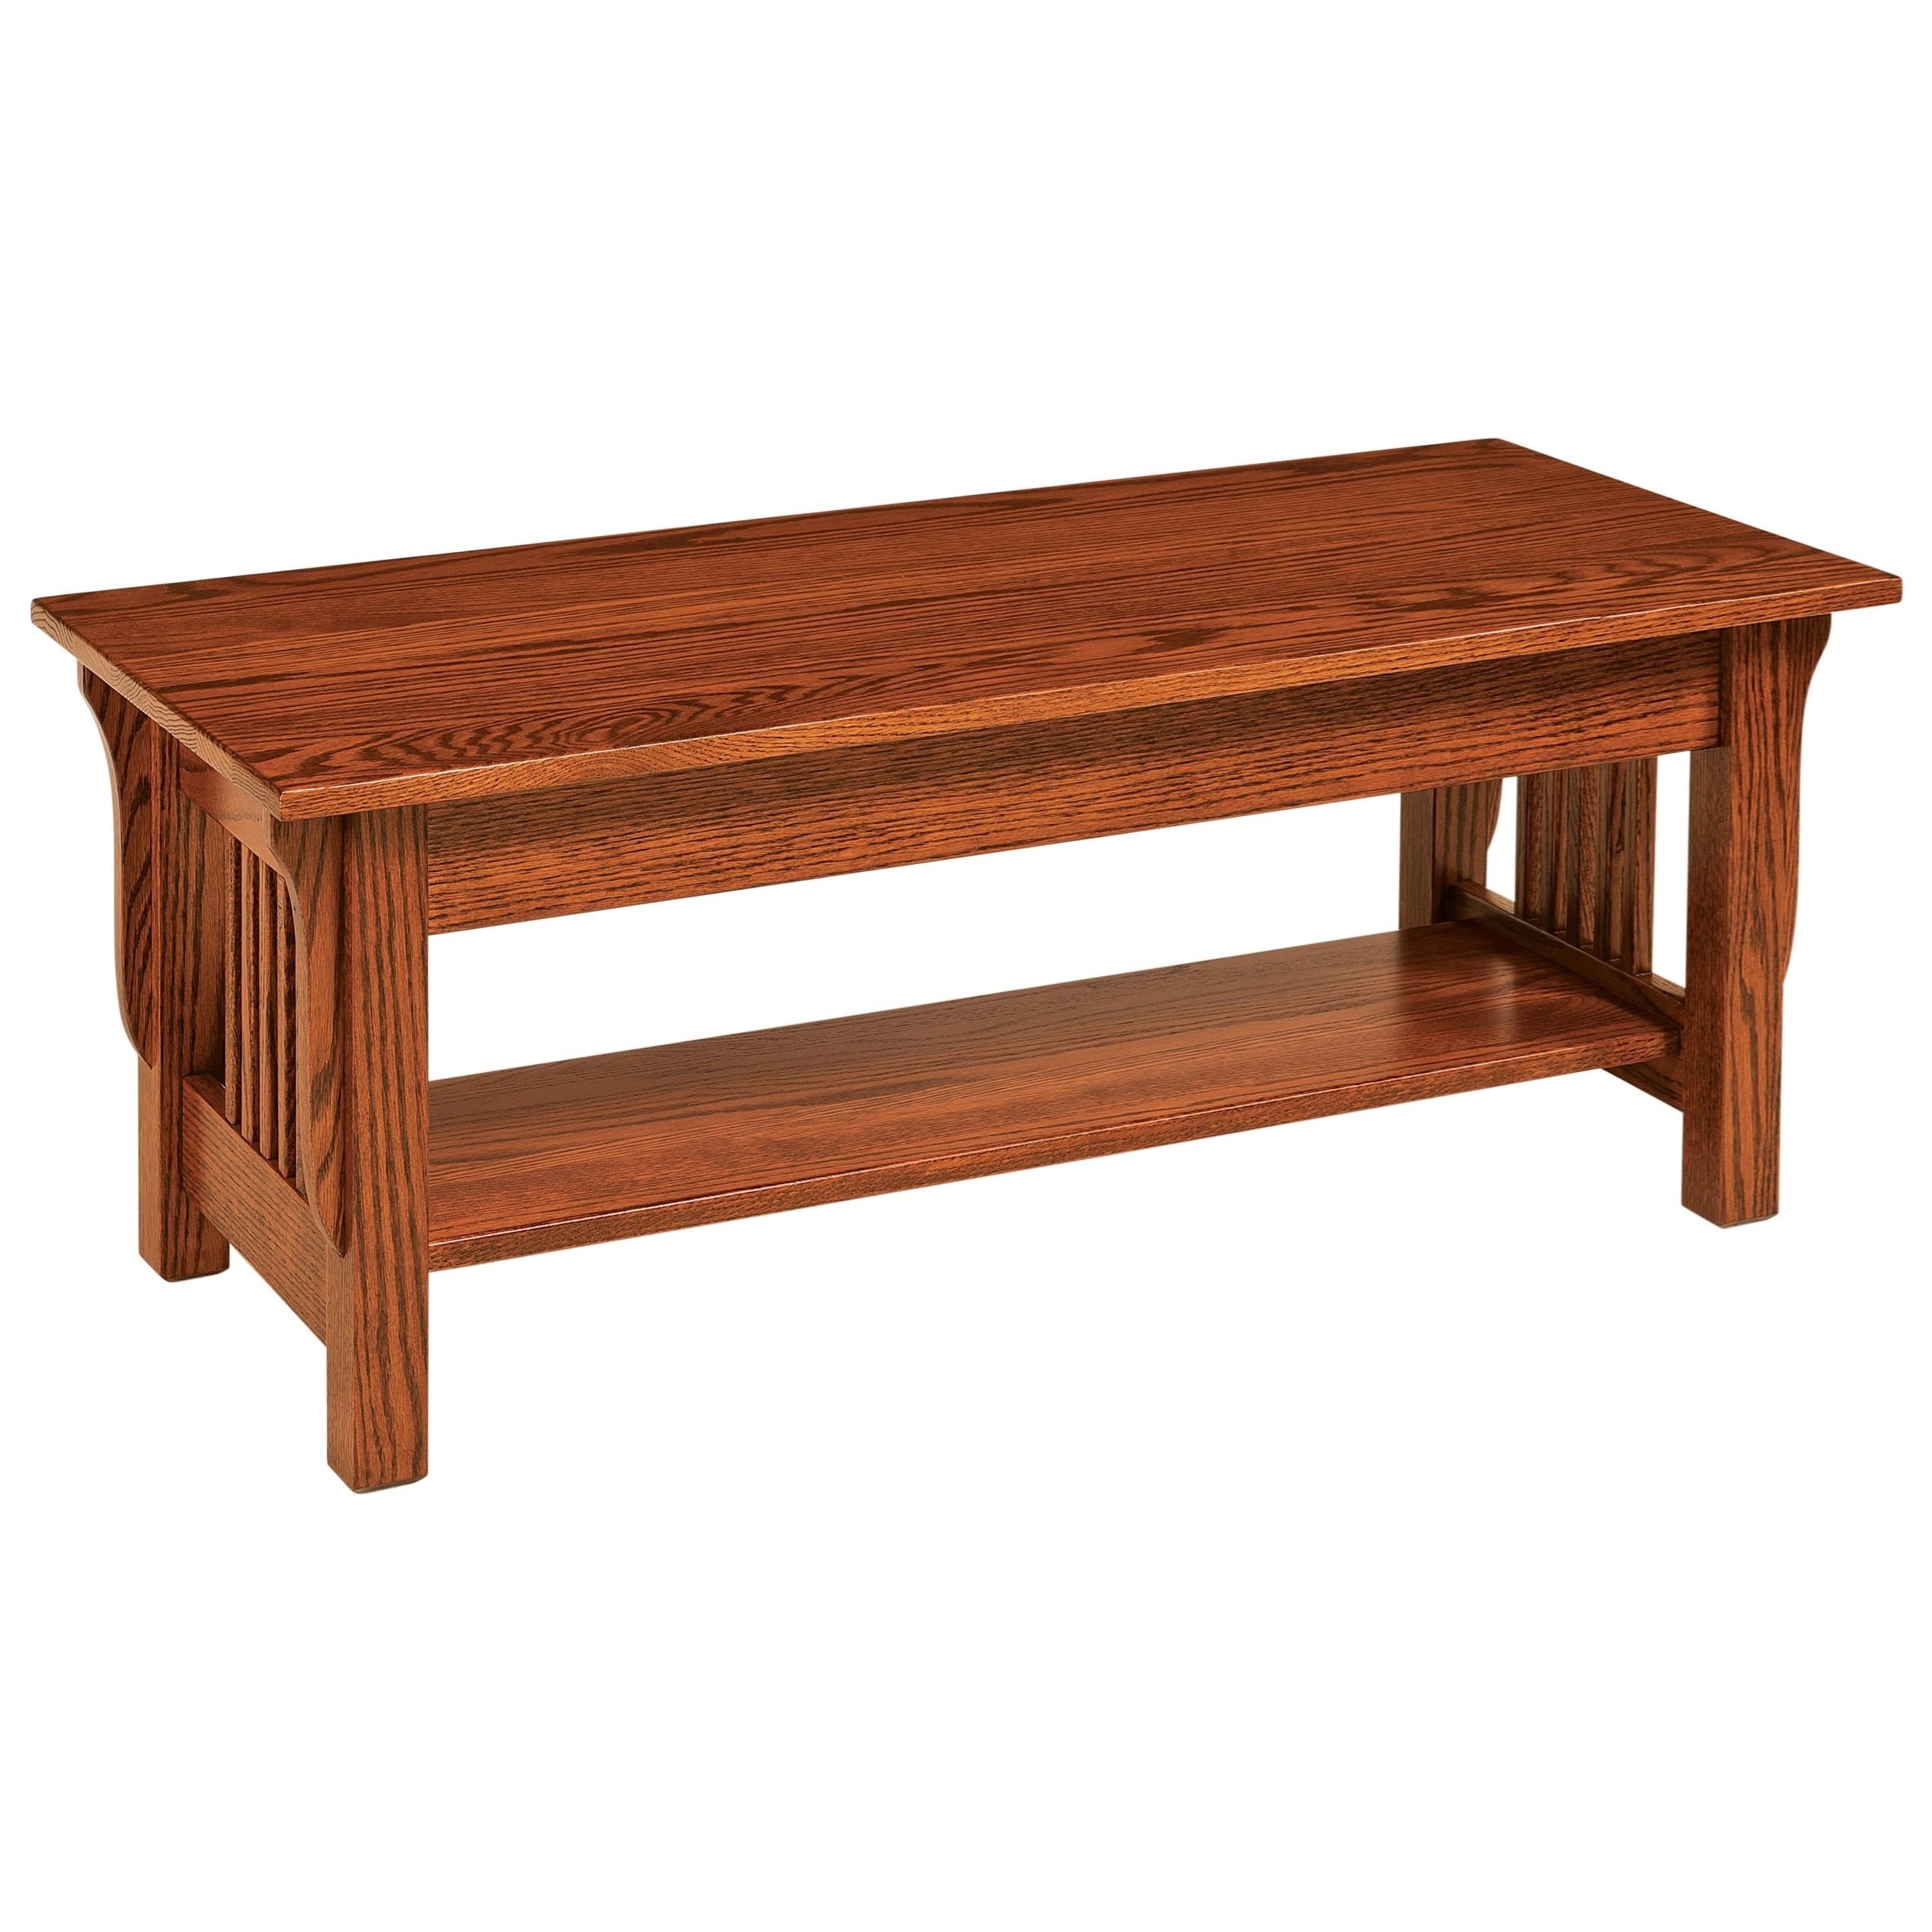 Leah Coffee Table by Crystal Valley Hardwoods at Saugerties Furniture Mart